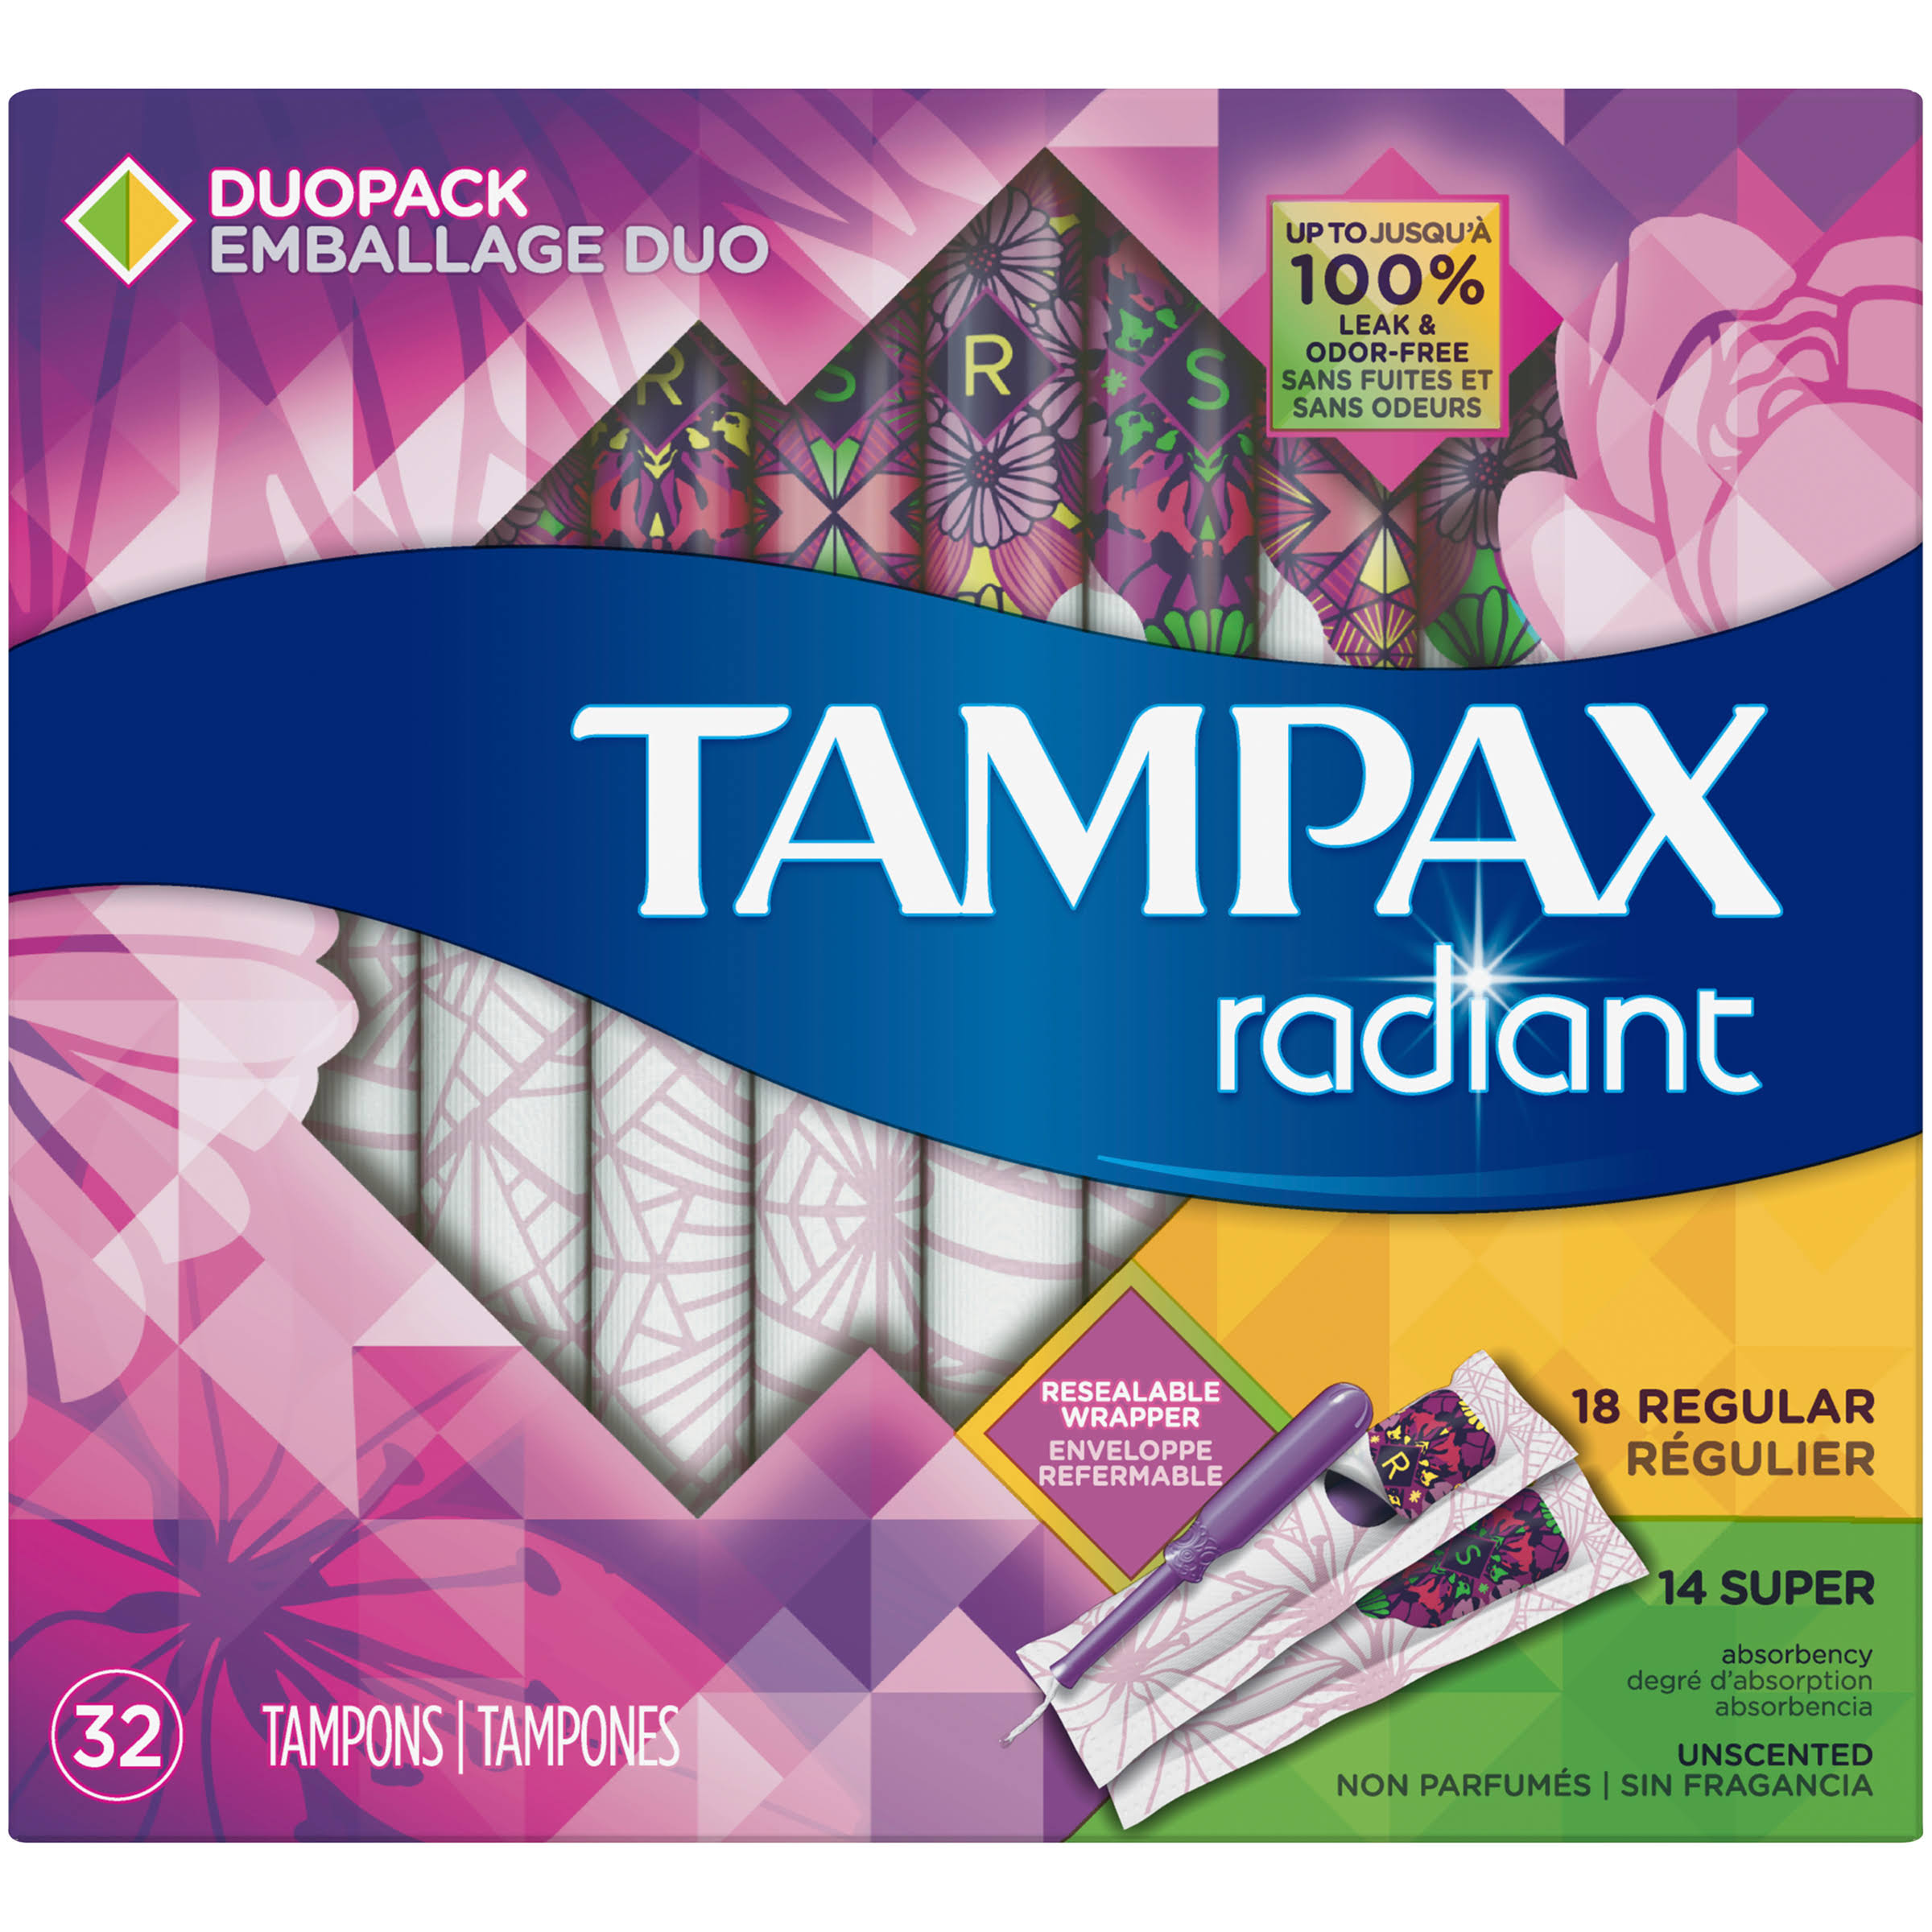 Tampax Radiant Unscented Plastic Tampons Duo Pack - 32 Pack